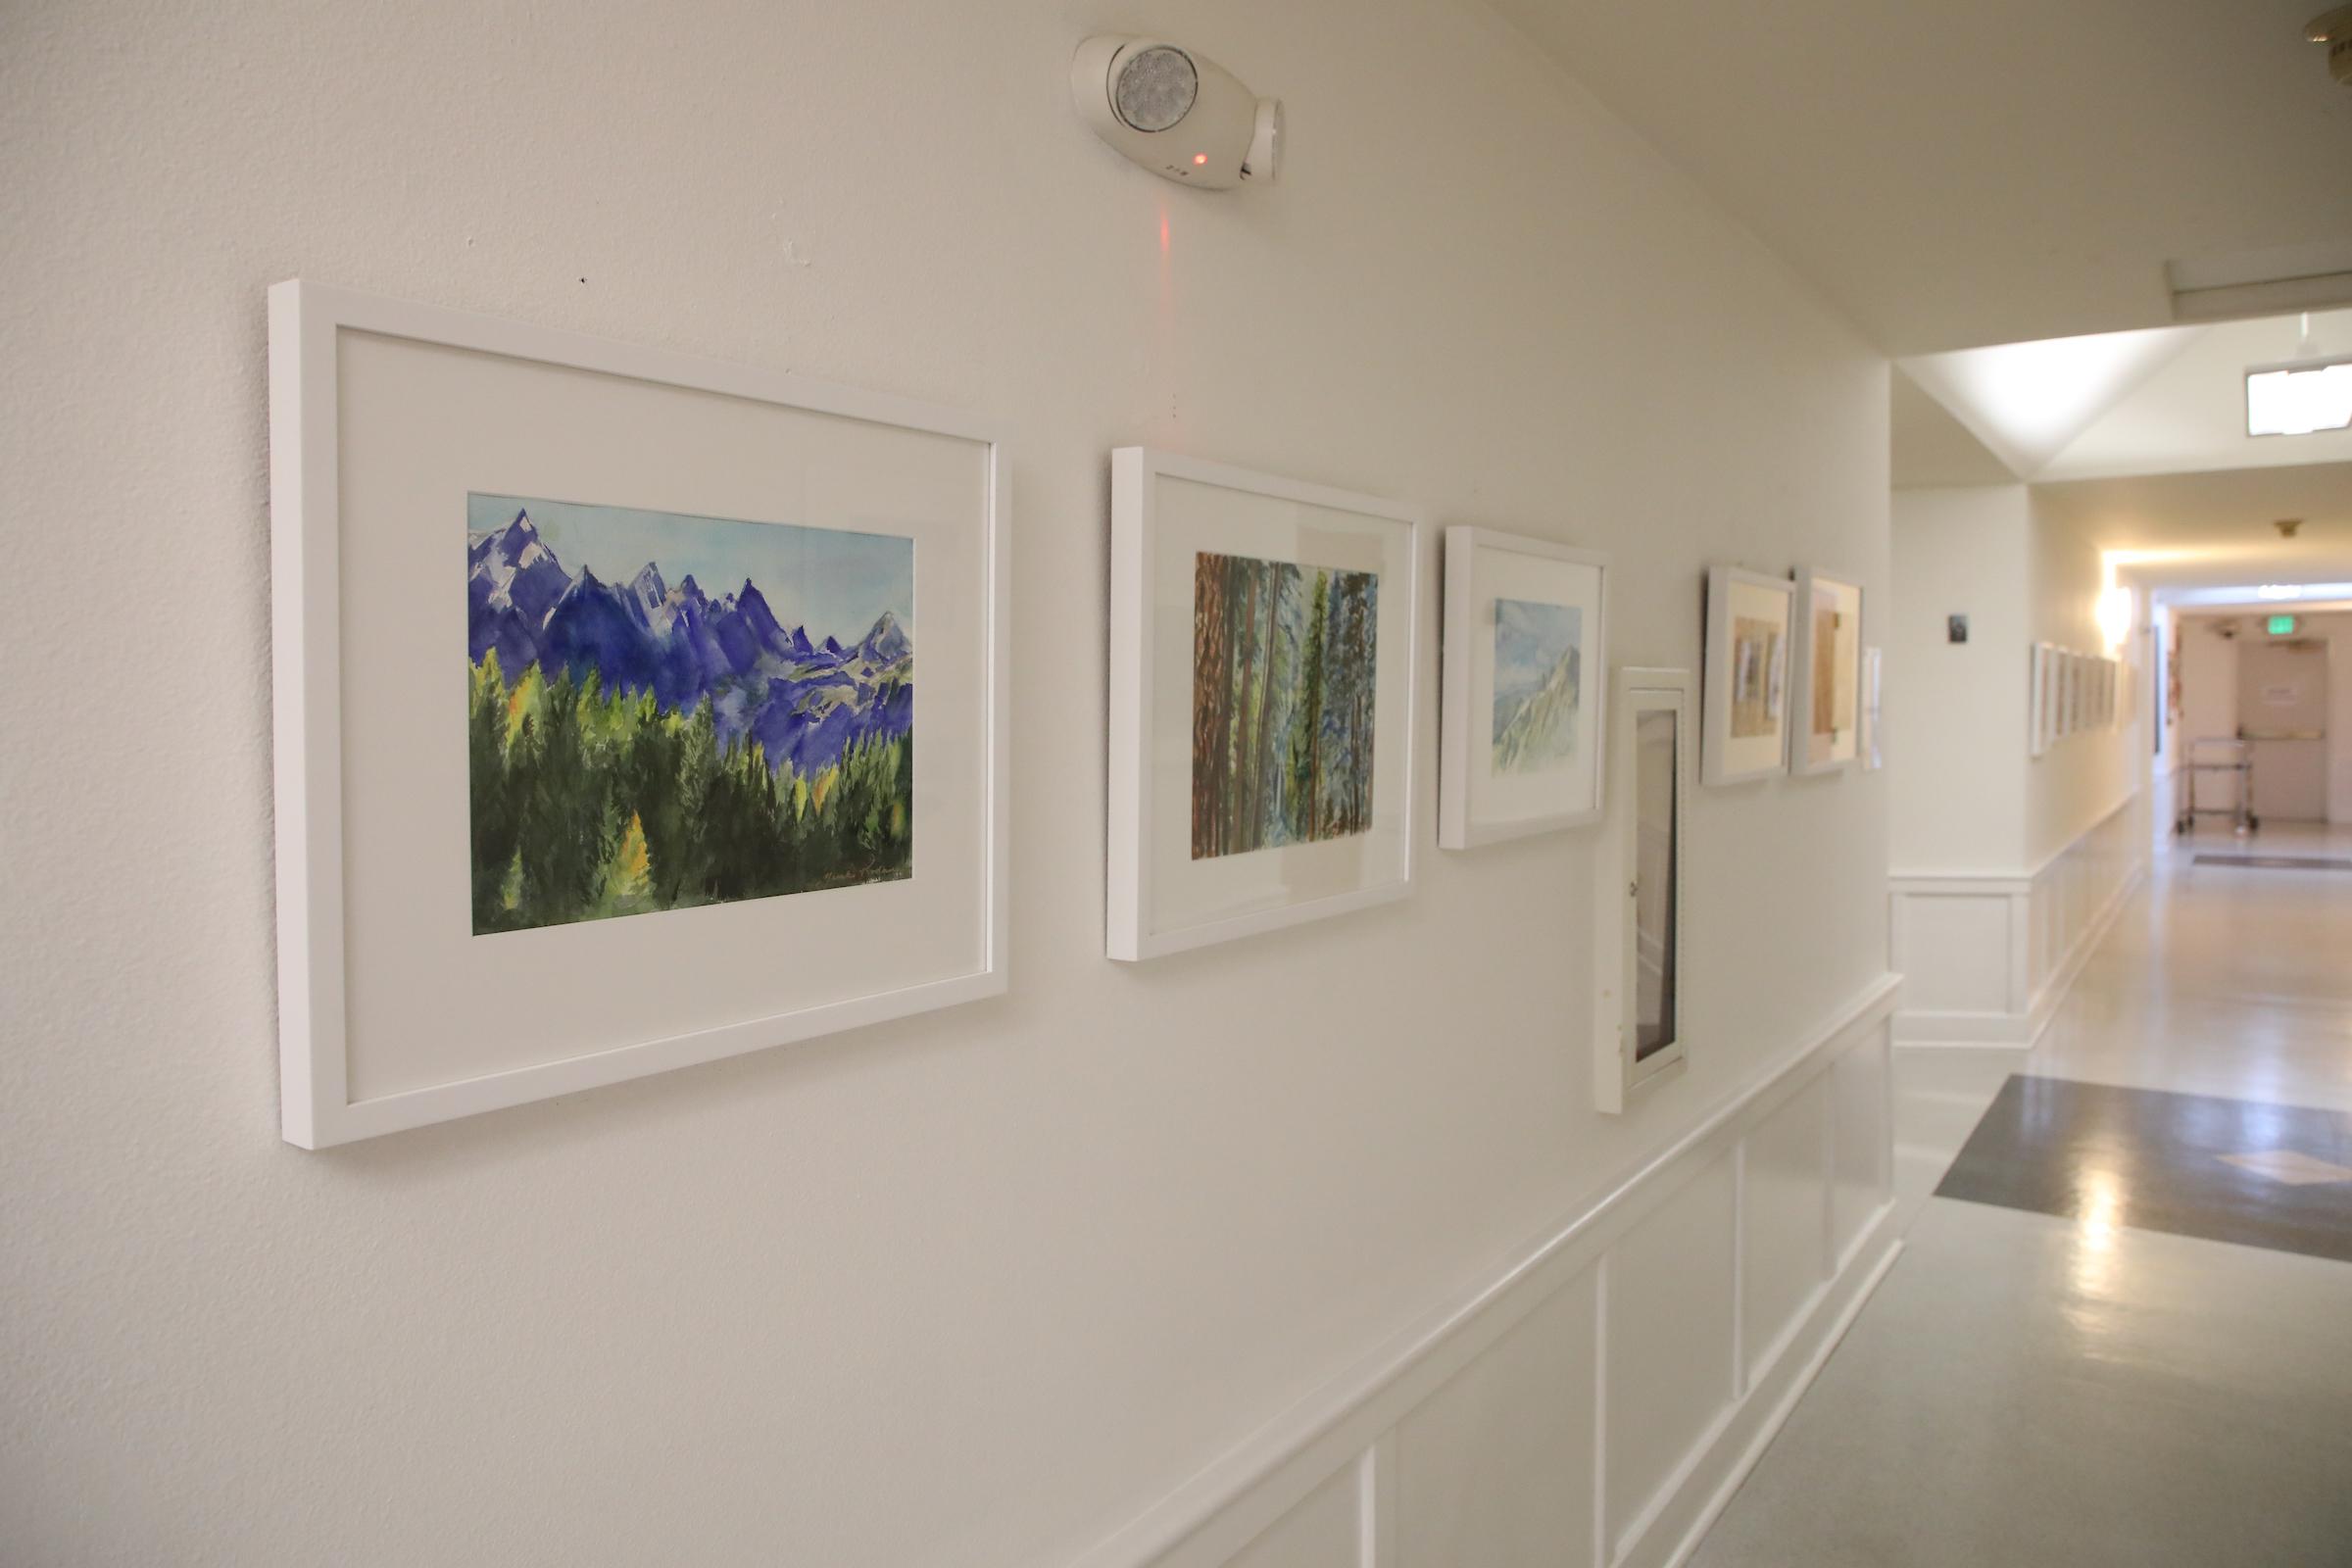 photo of images hanging on a hallway wall